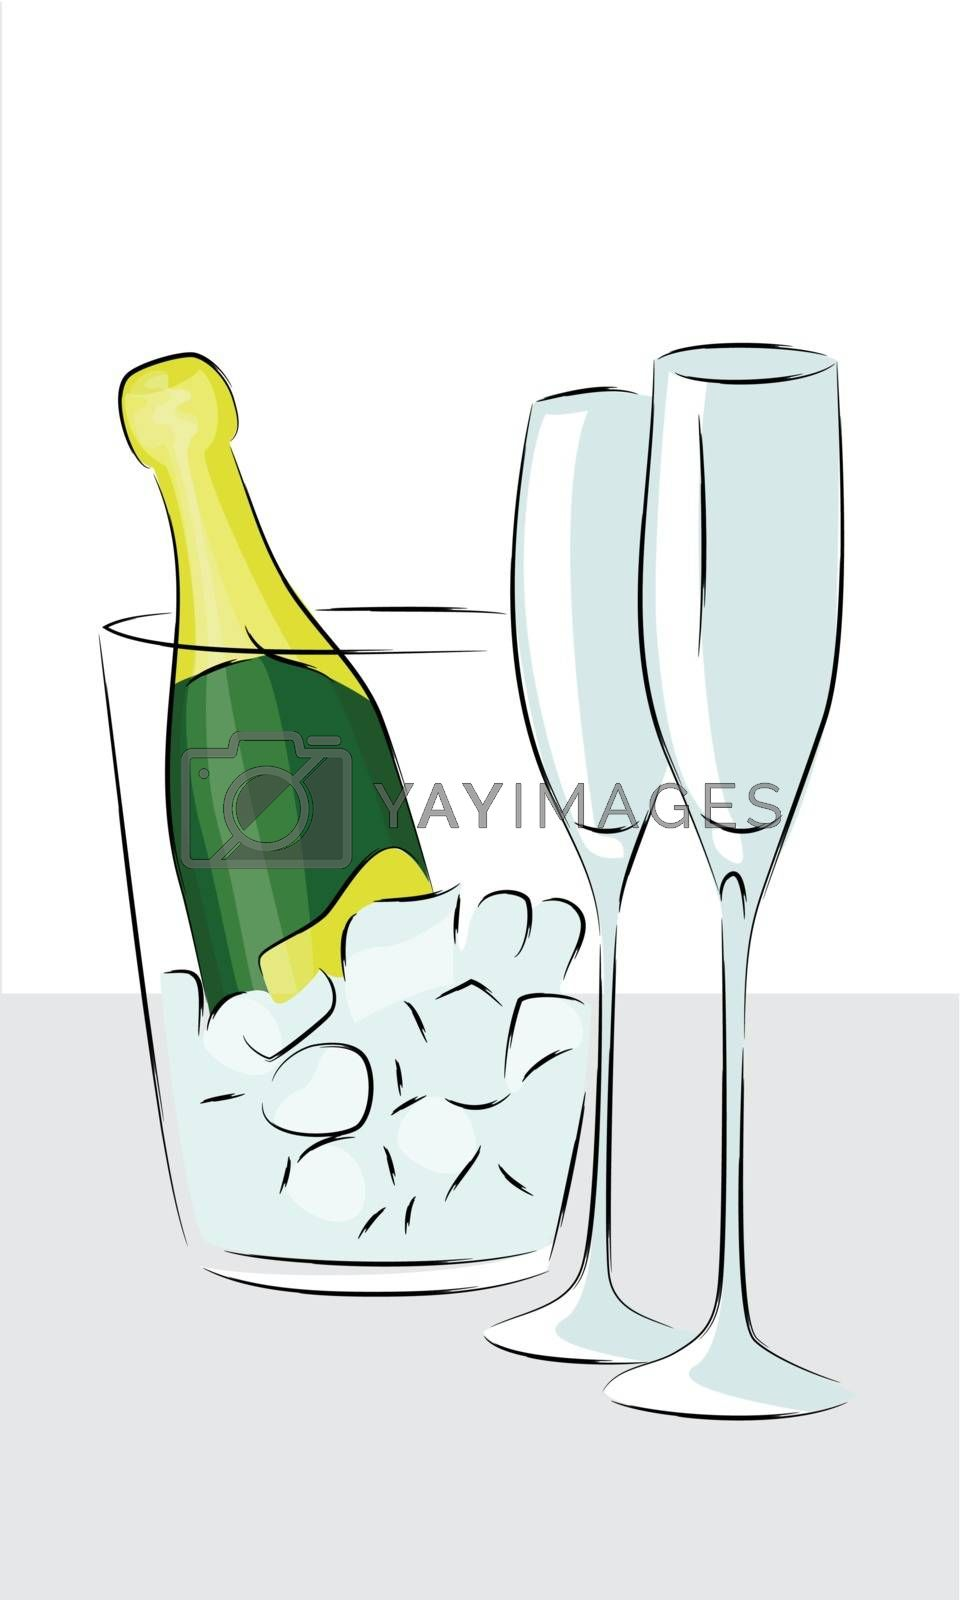 Royalty free image of bottle of champagne  by sergeevana